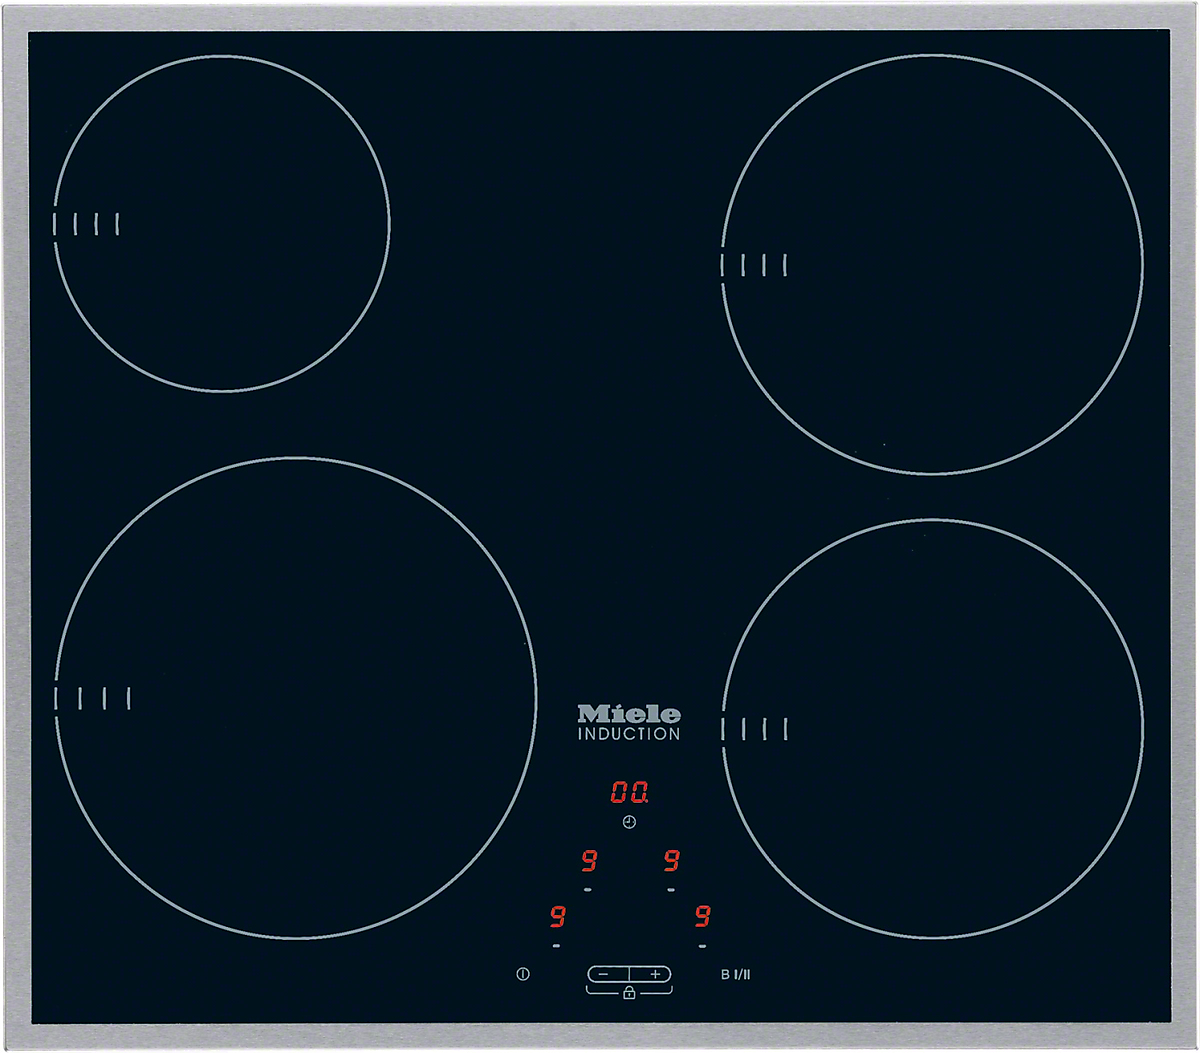 KM 6115   Induction Hob With Onset Controls With 4 Cooking Zones For  Maximum Convenience At